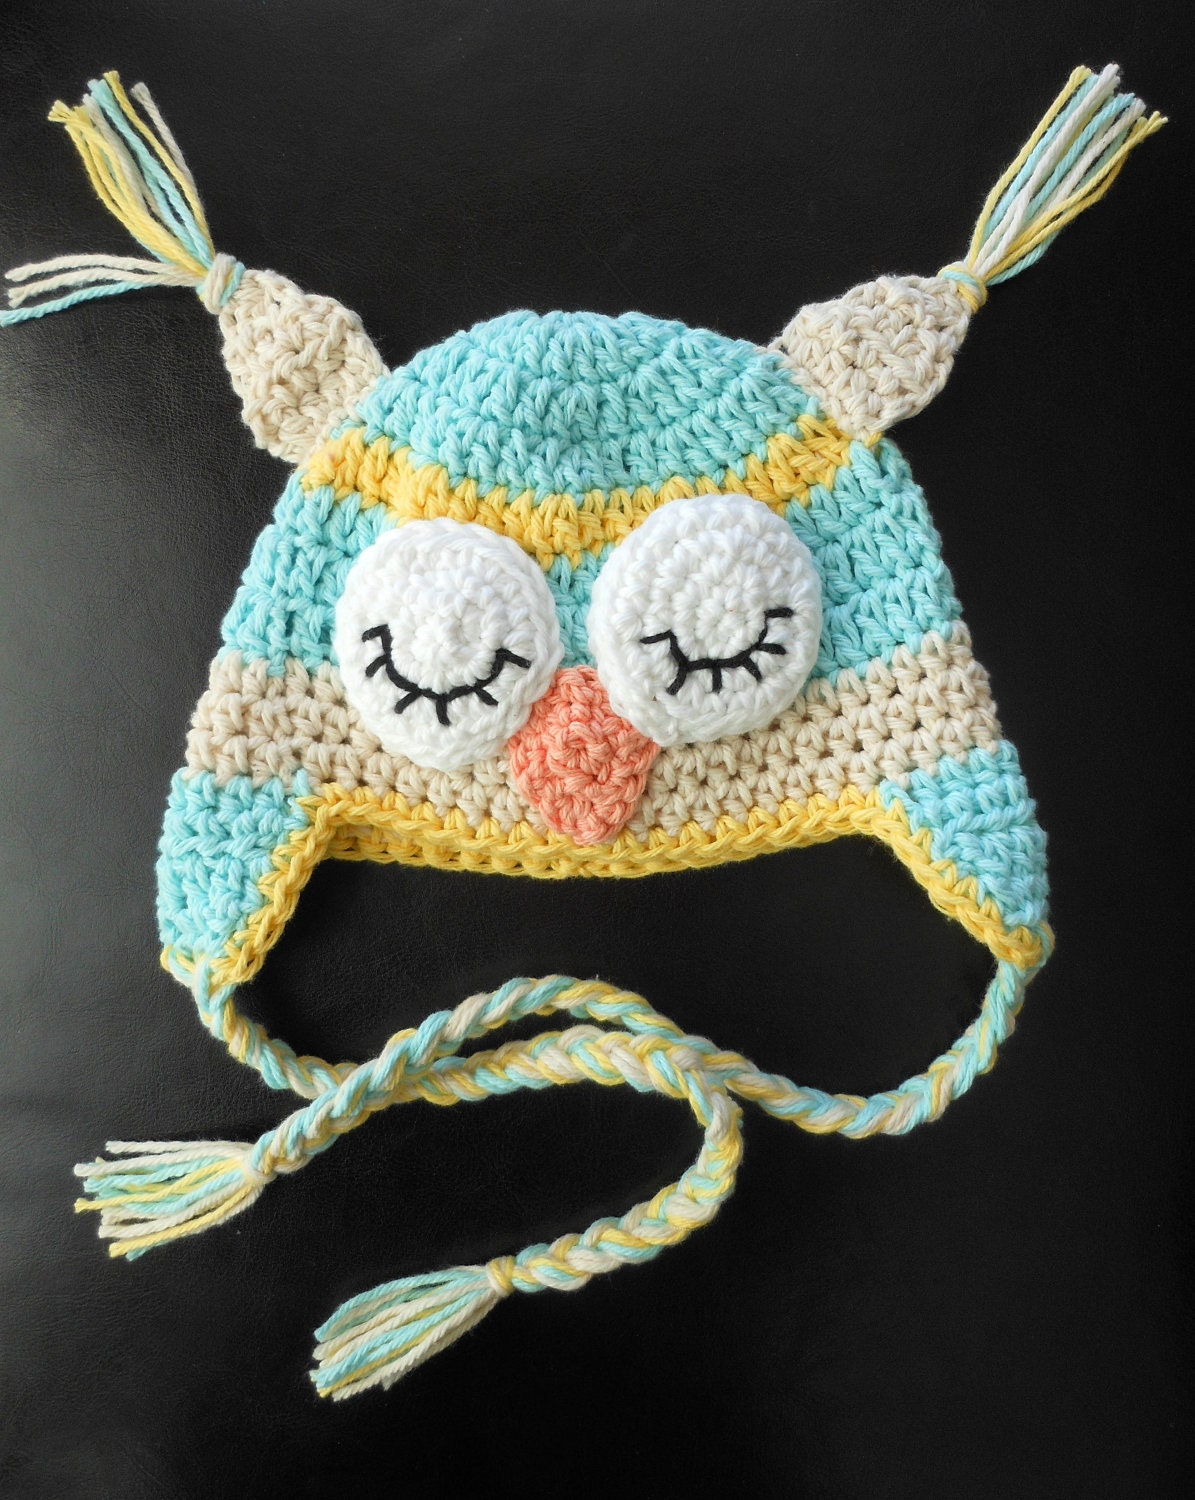 Sleeping Owl Crochet Hat- Lt. Turquoise, Yellow, Ecru w/ Earflaps, Braids, & Ear Tassels. Toddler Size.